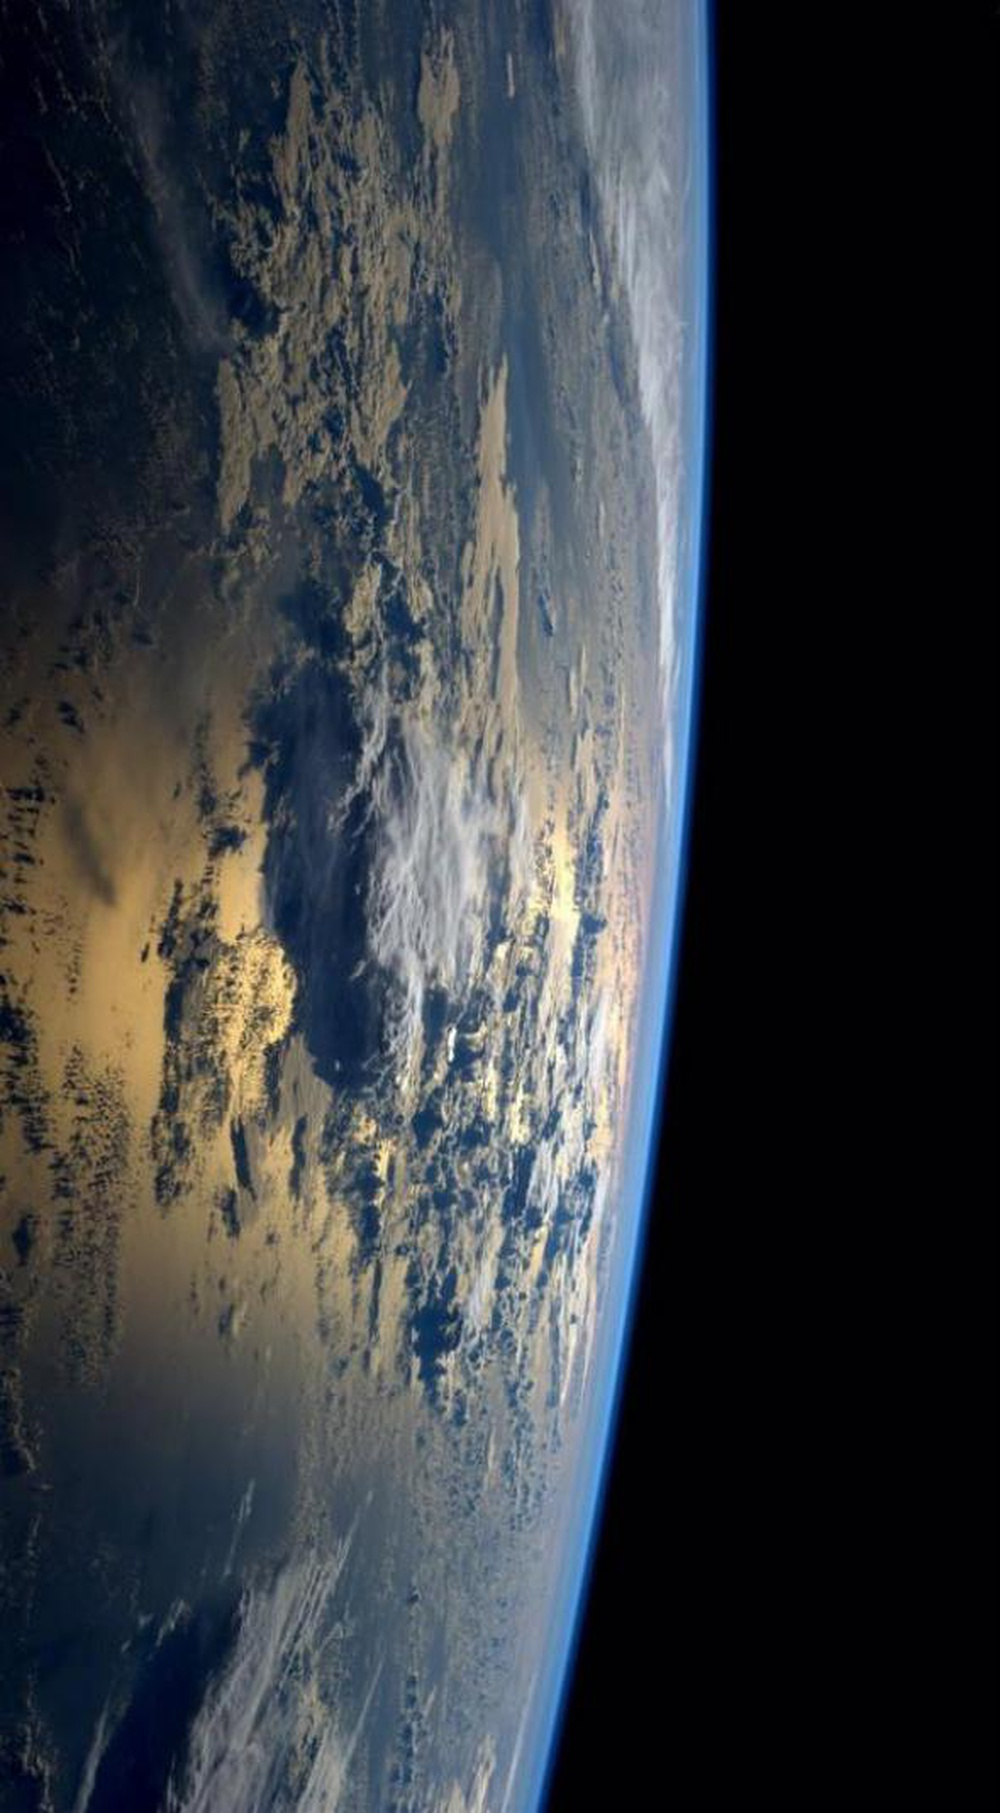 Going into the outer space has given us a new perspective about who we are